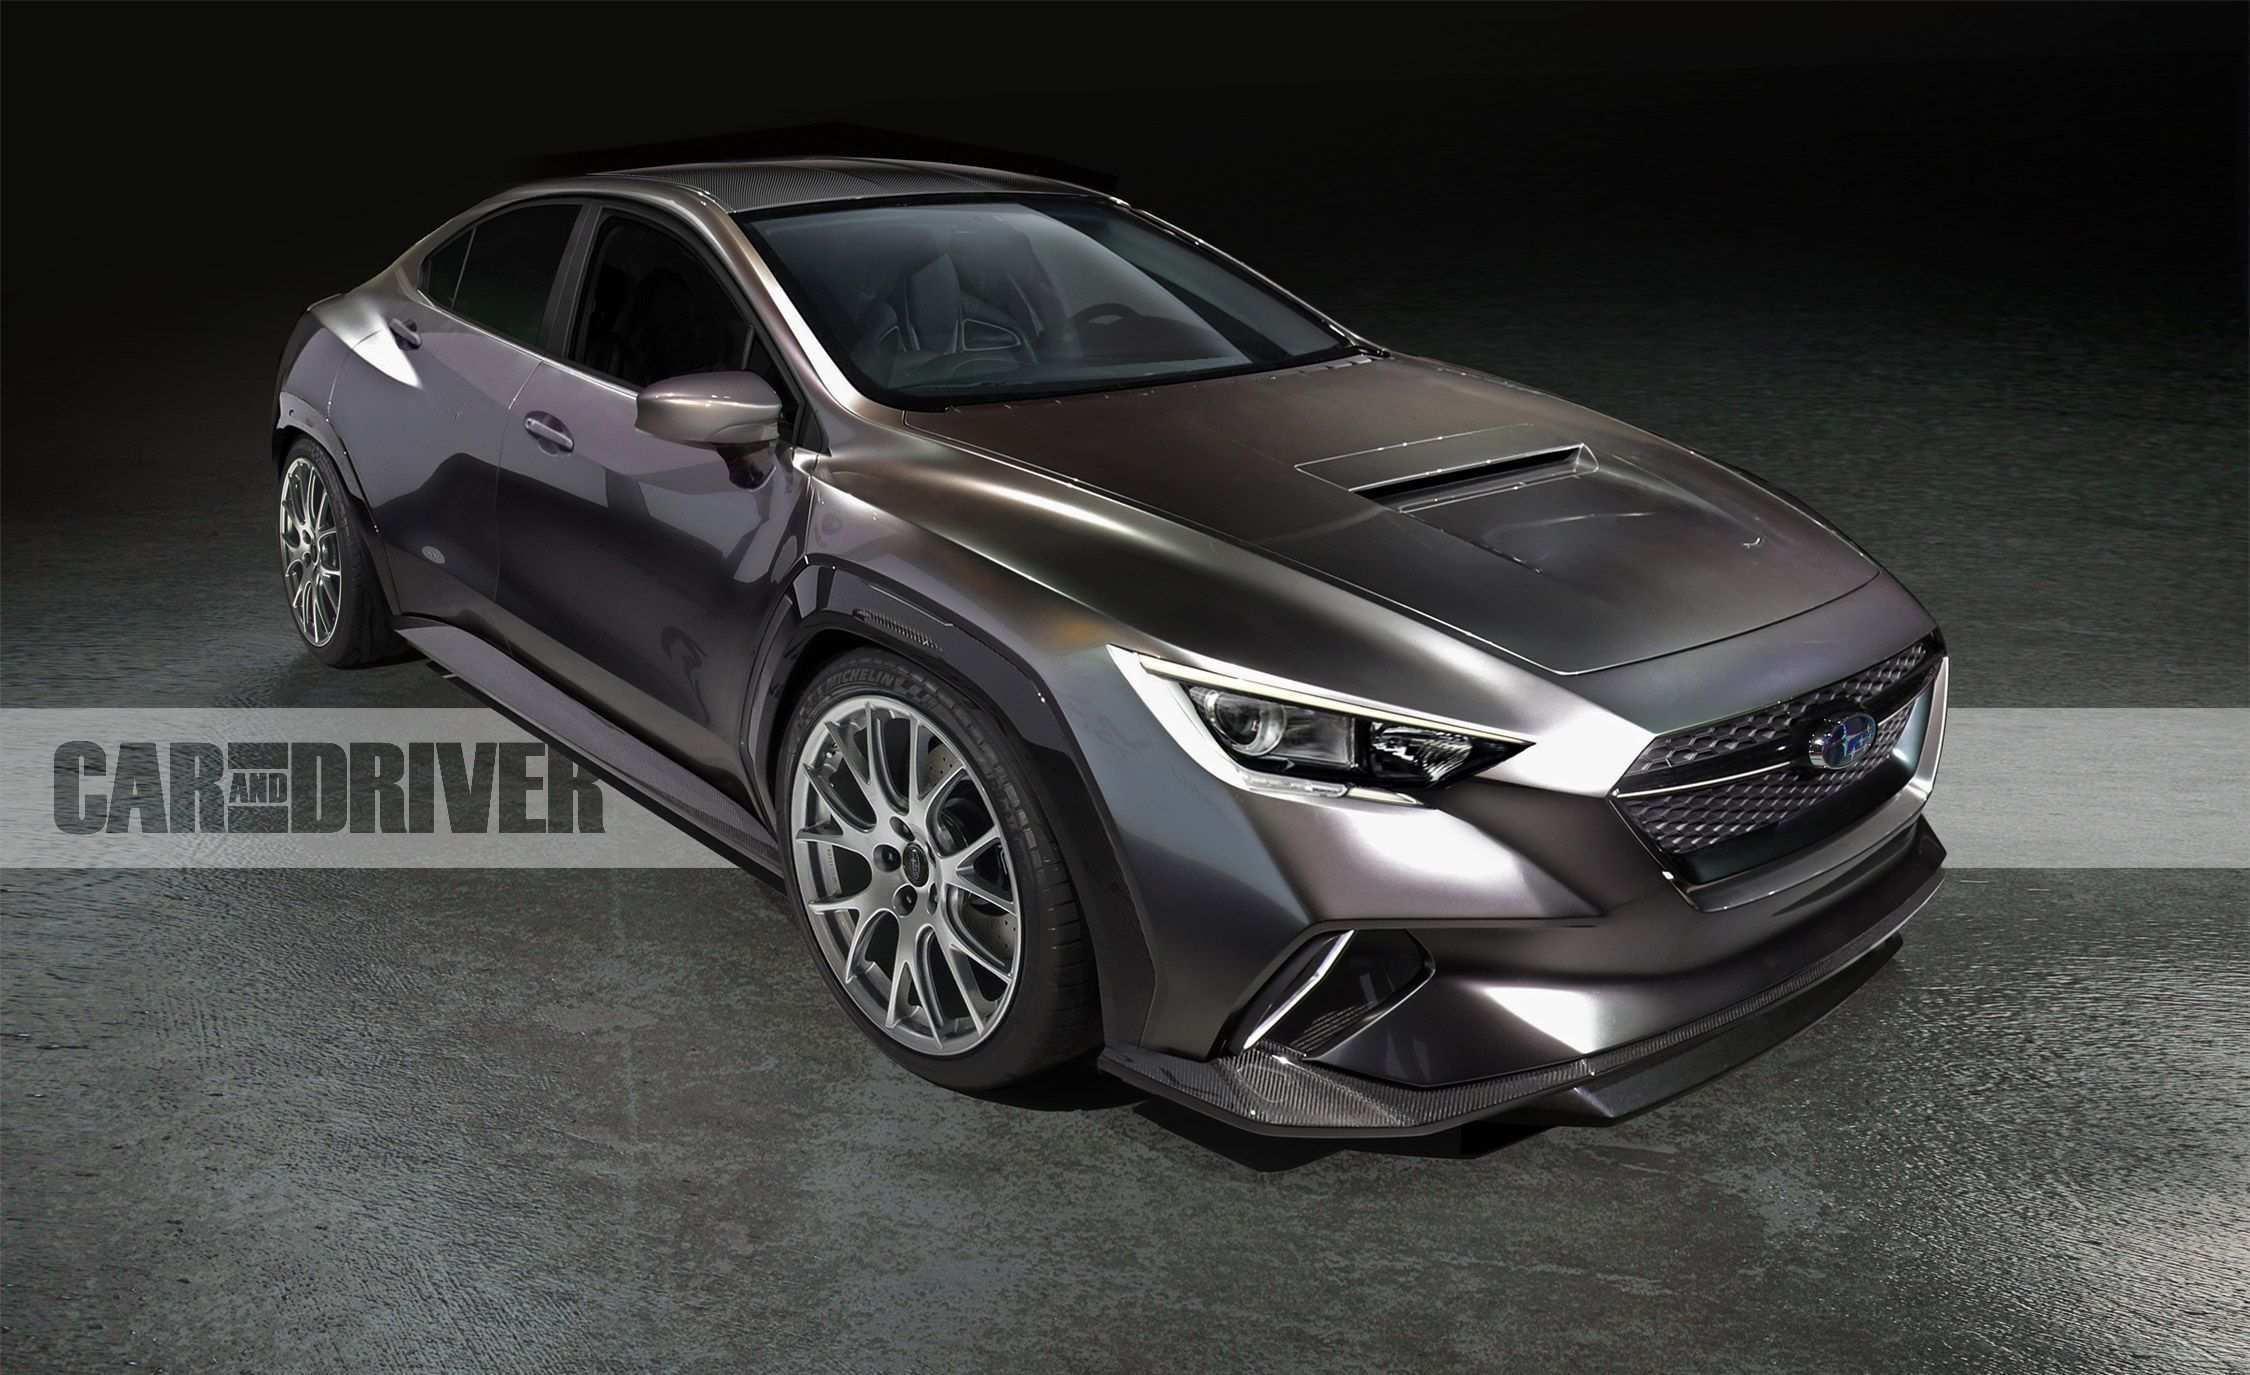 79 Great Subaru Sti 2020 Exterior Reviews with Subaru Sti 2020 Exterior